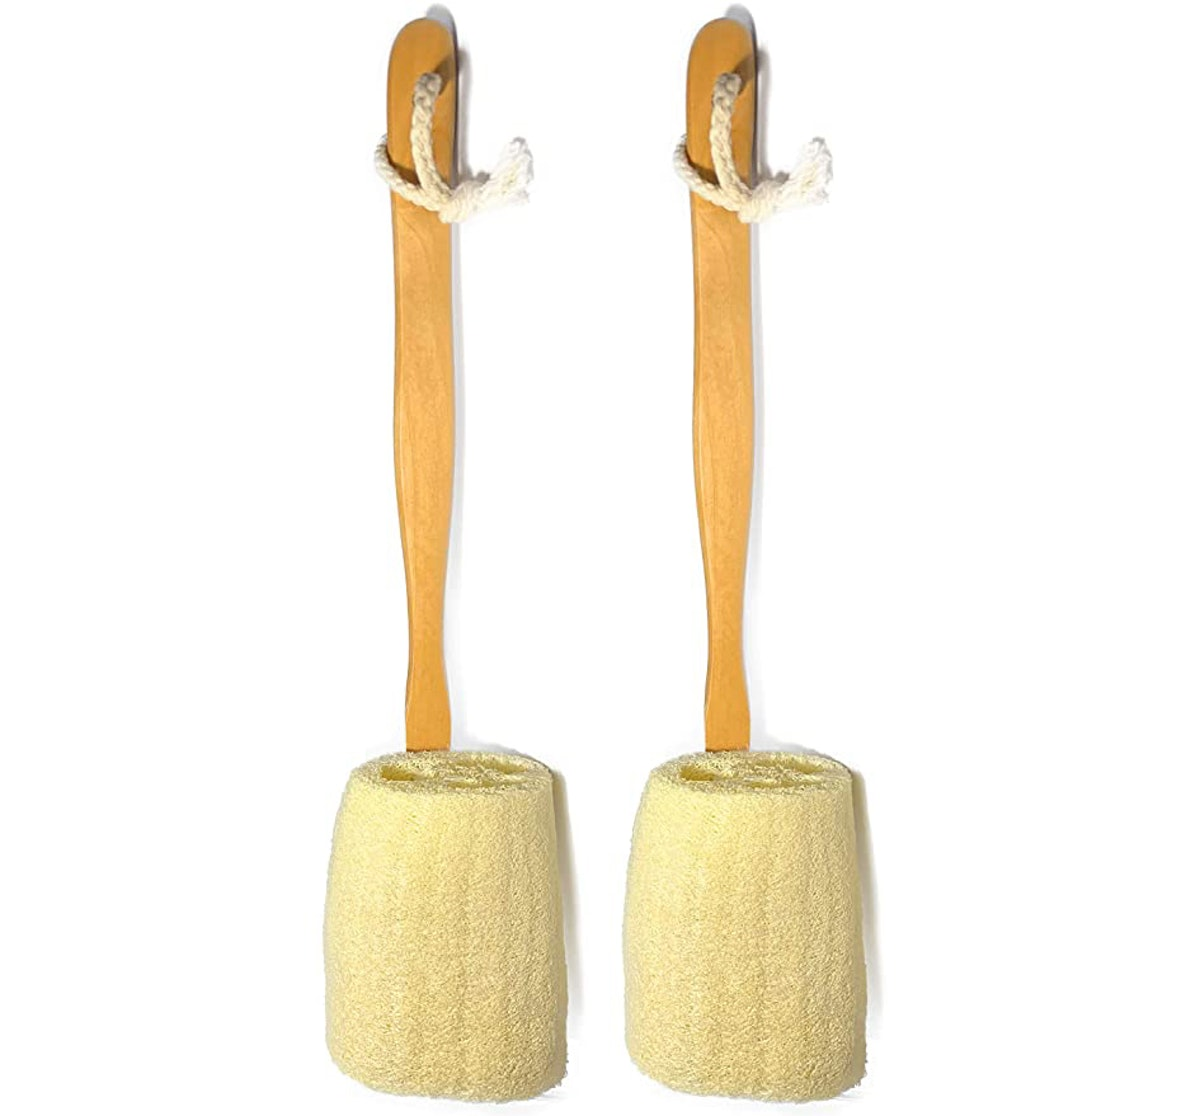 Natural Exfoliating Loofah Bath Brush On a Stick (2-Pack)